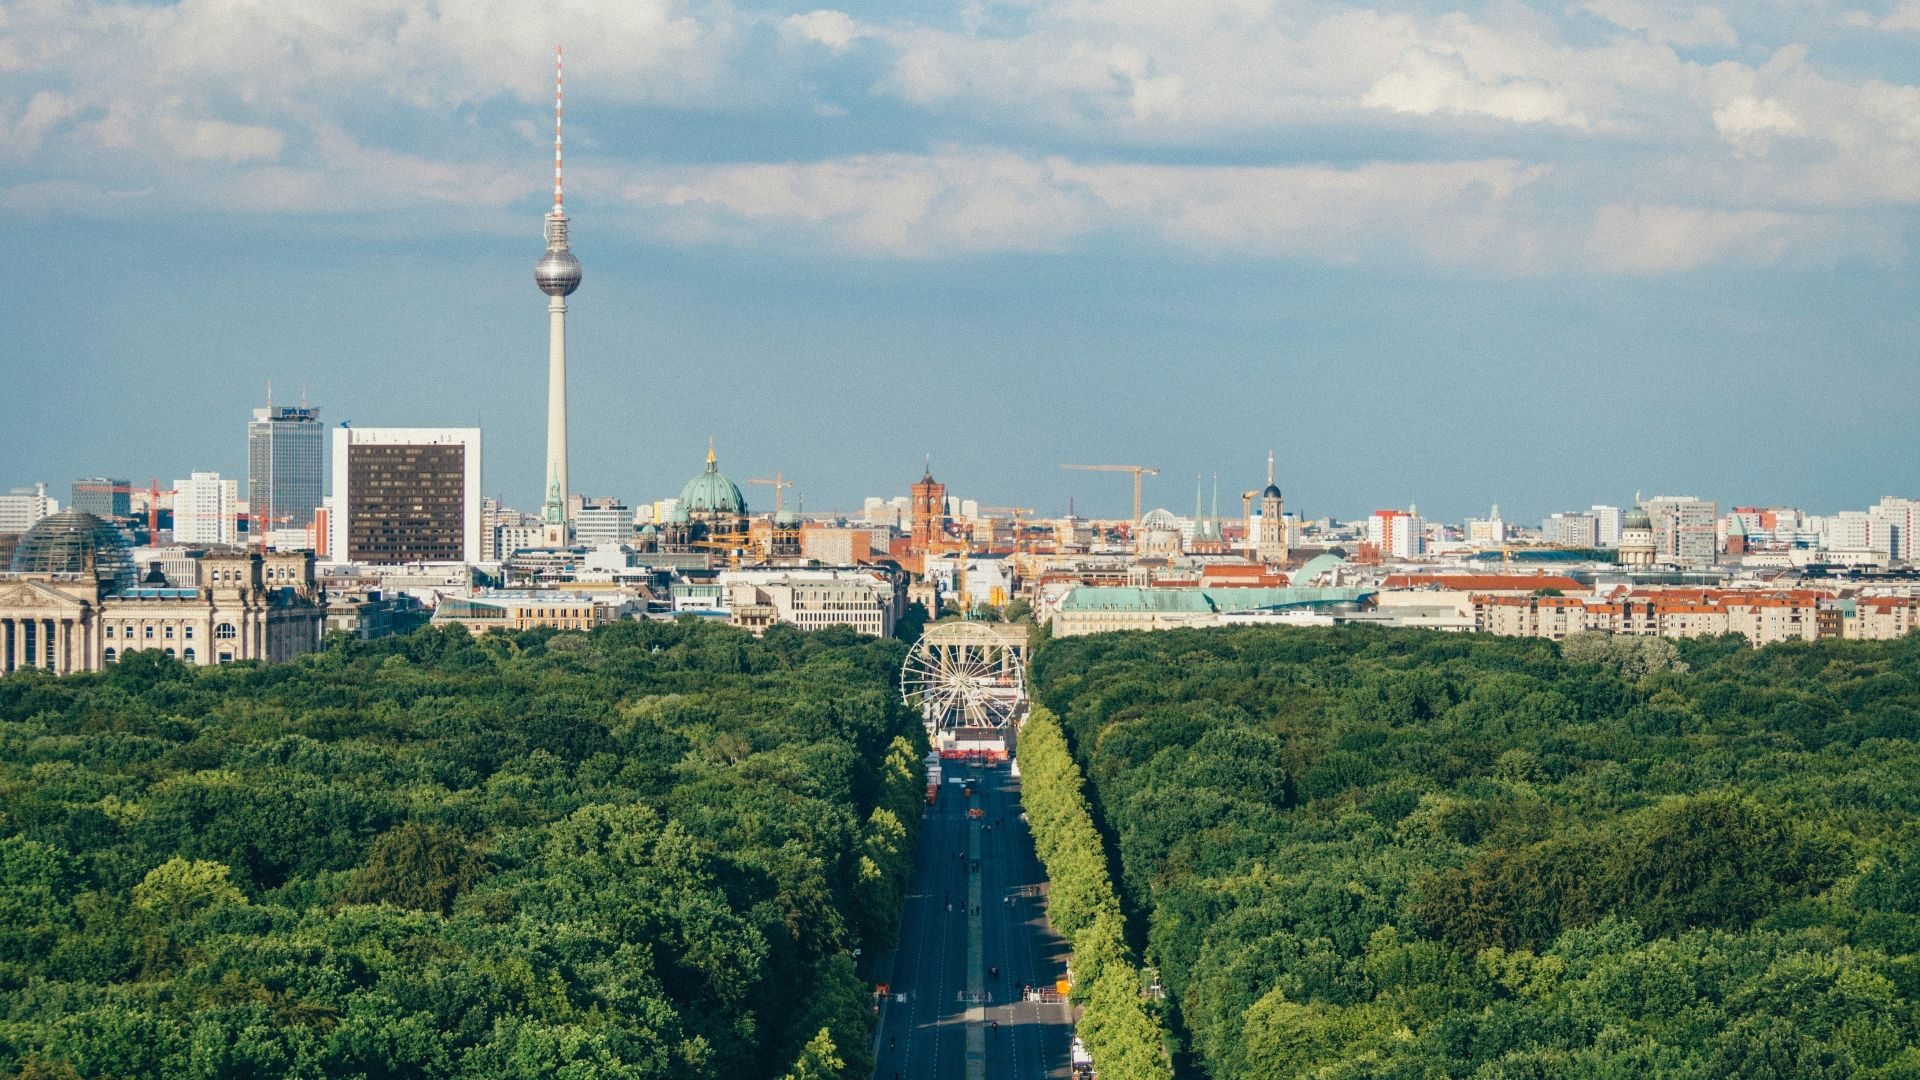 Private investors have sold the legal entity of an office building in Berlin to Covivio Immobilien